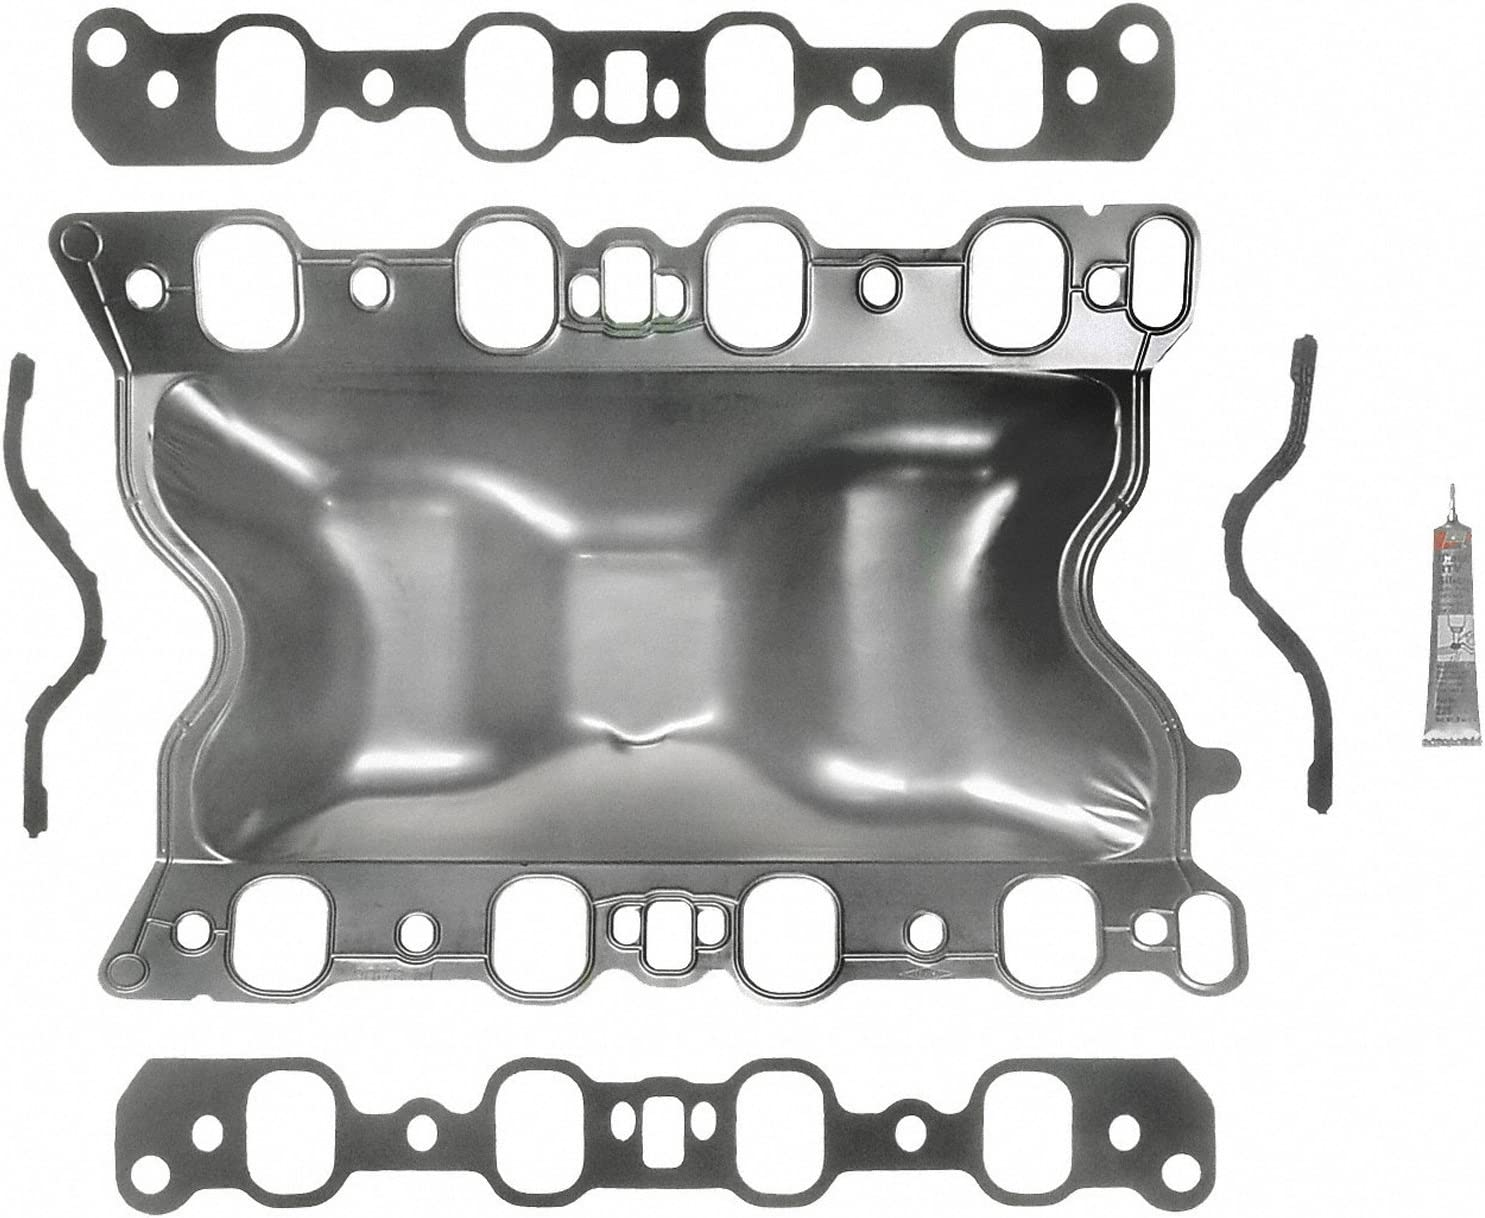 Fel-Pro MS 90240 Engine Intake Manifold Gasket Set